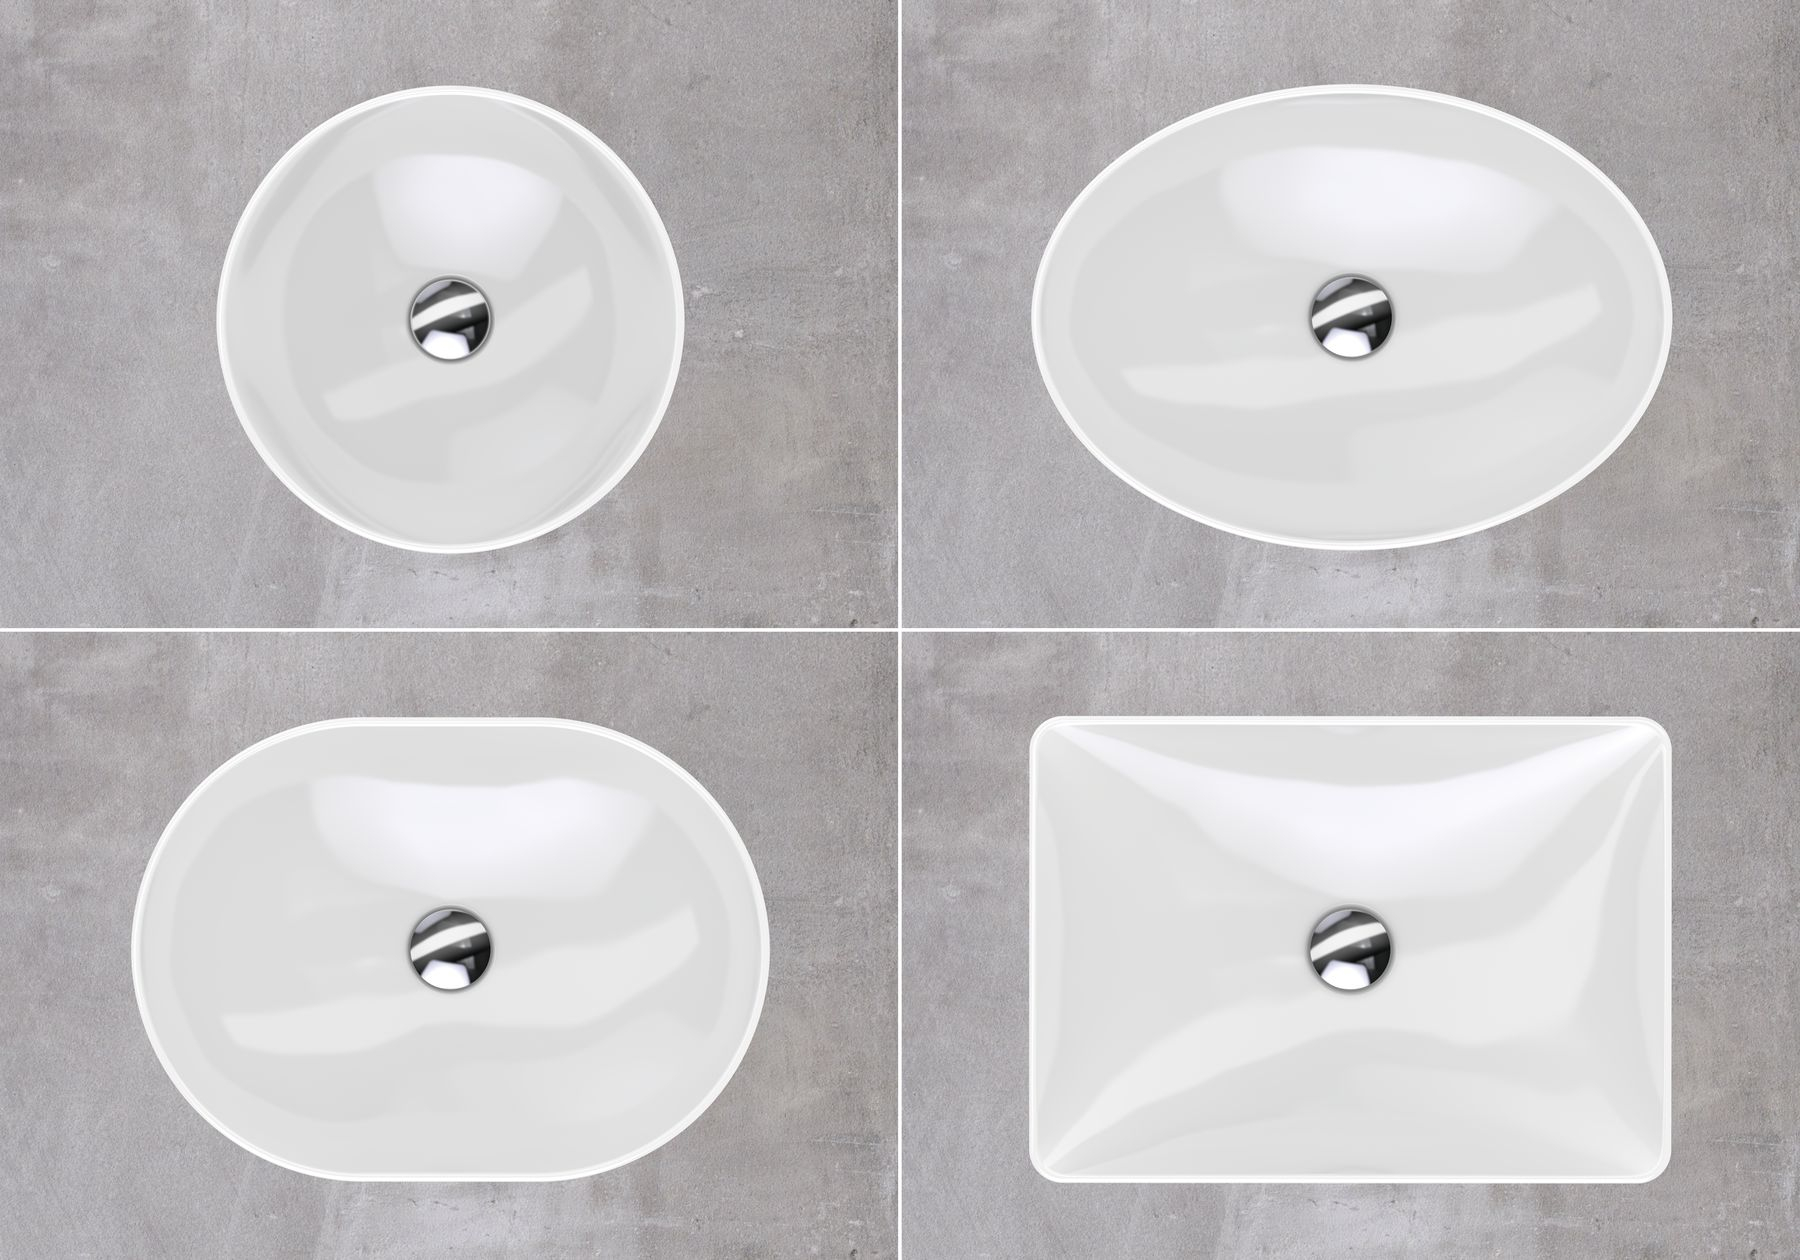 squarerooms bathroom geberit variform washbasin white ceramic sink luxurious grey shapes